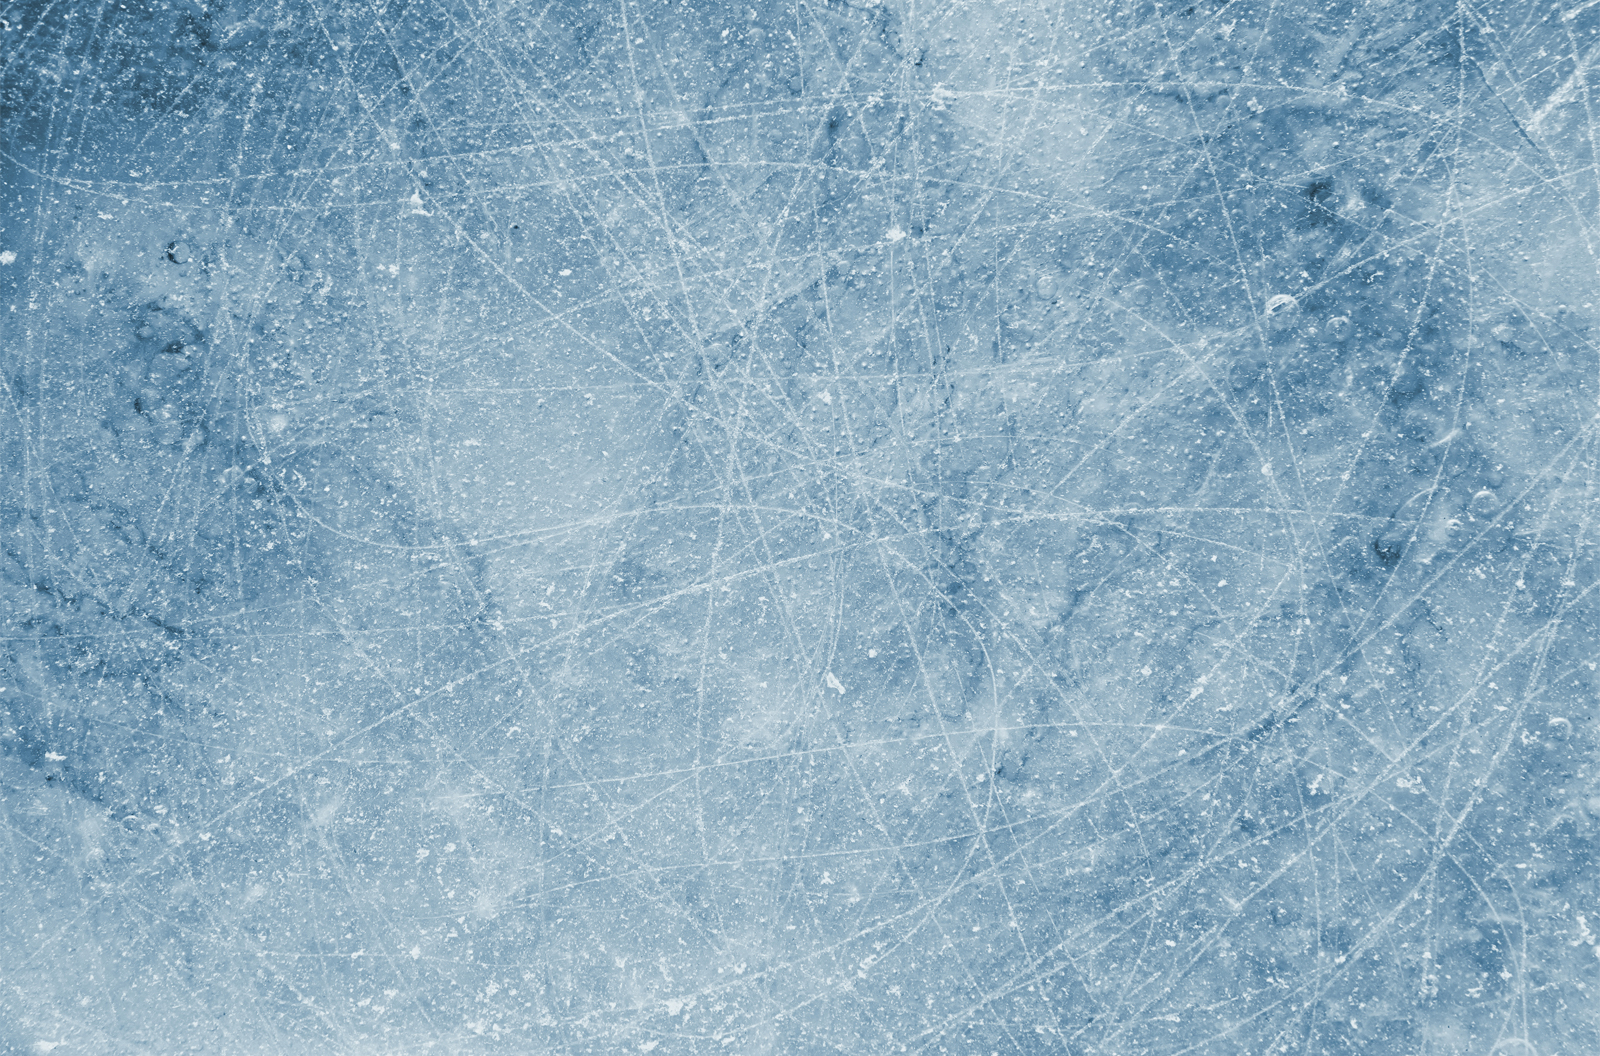 Close-up image of an ice background with many scratches